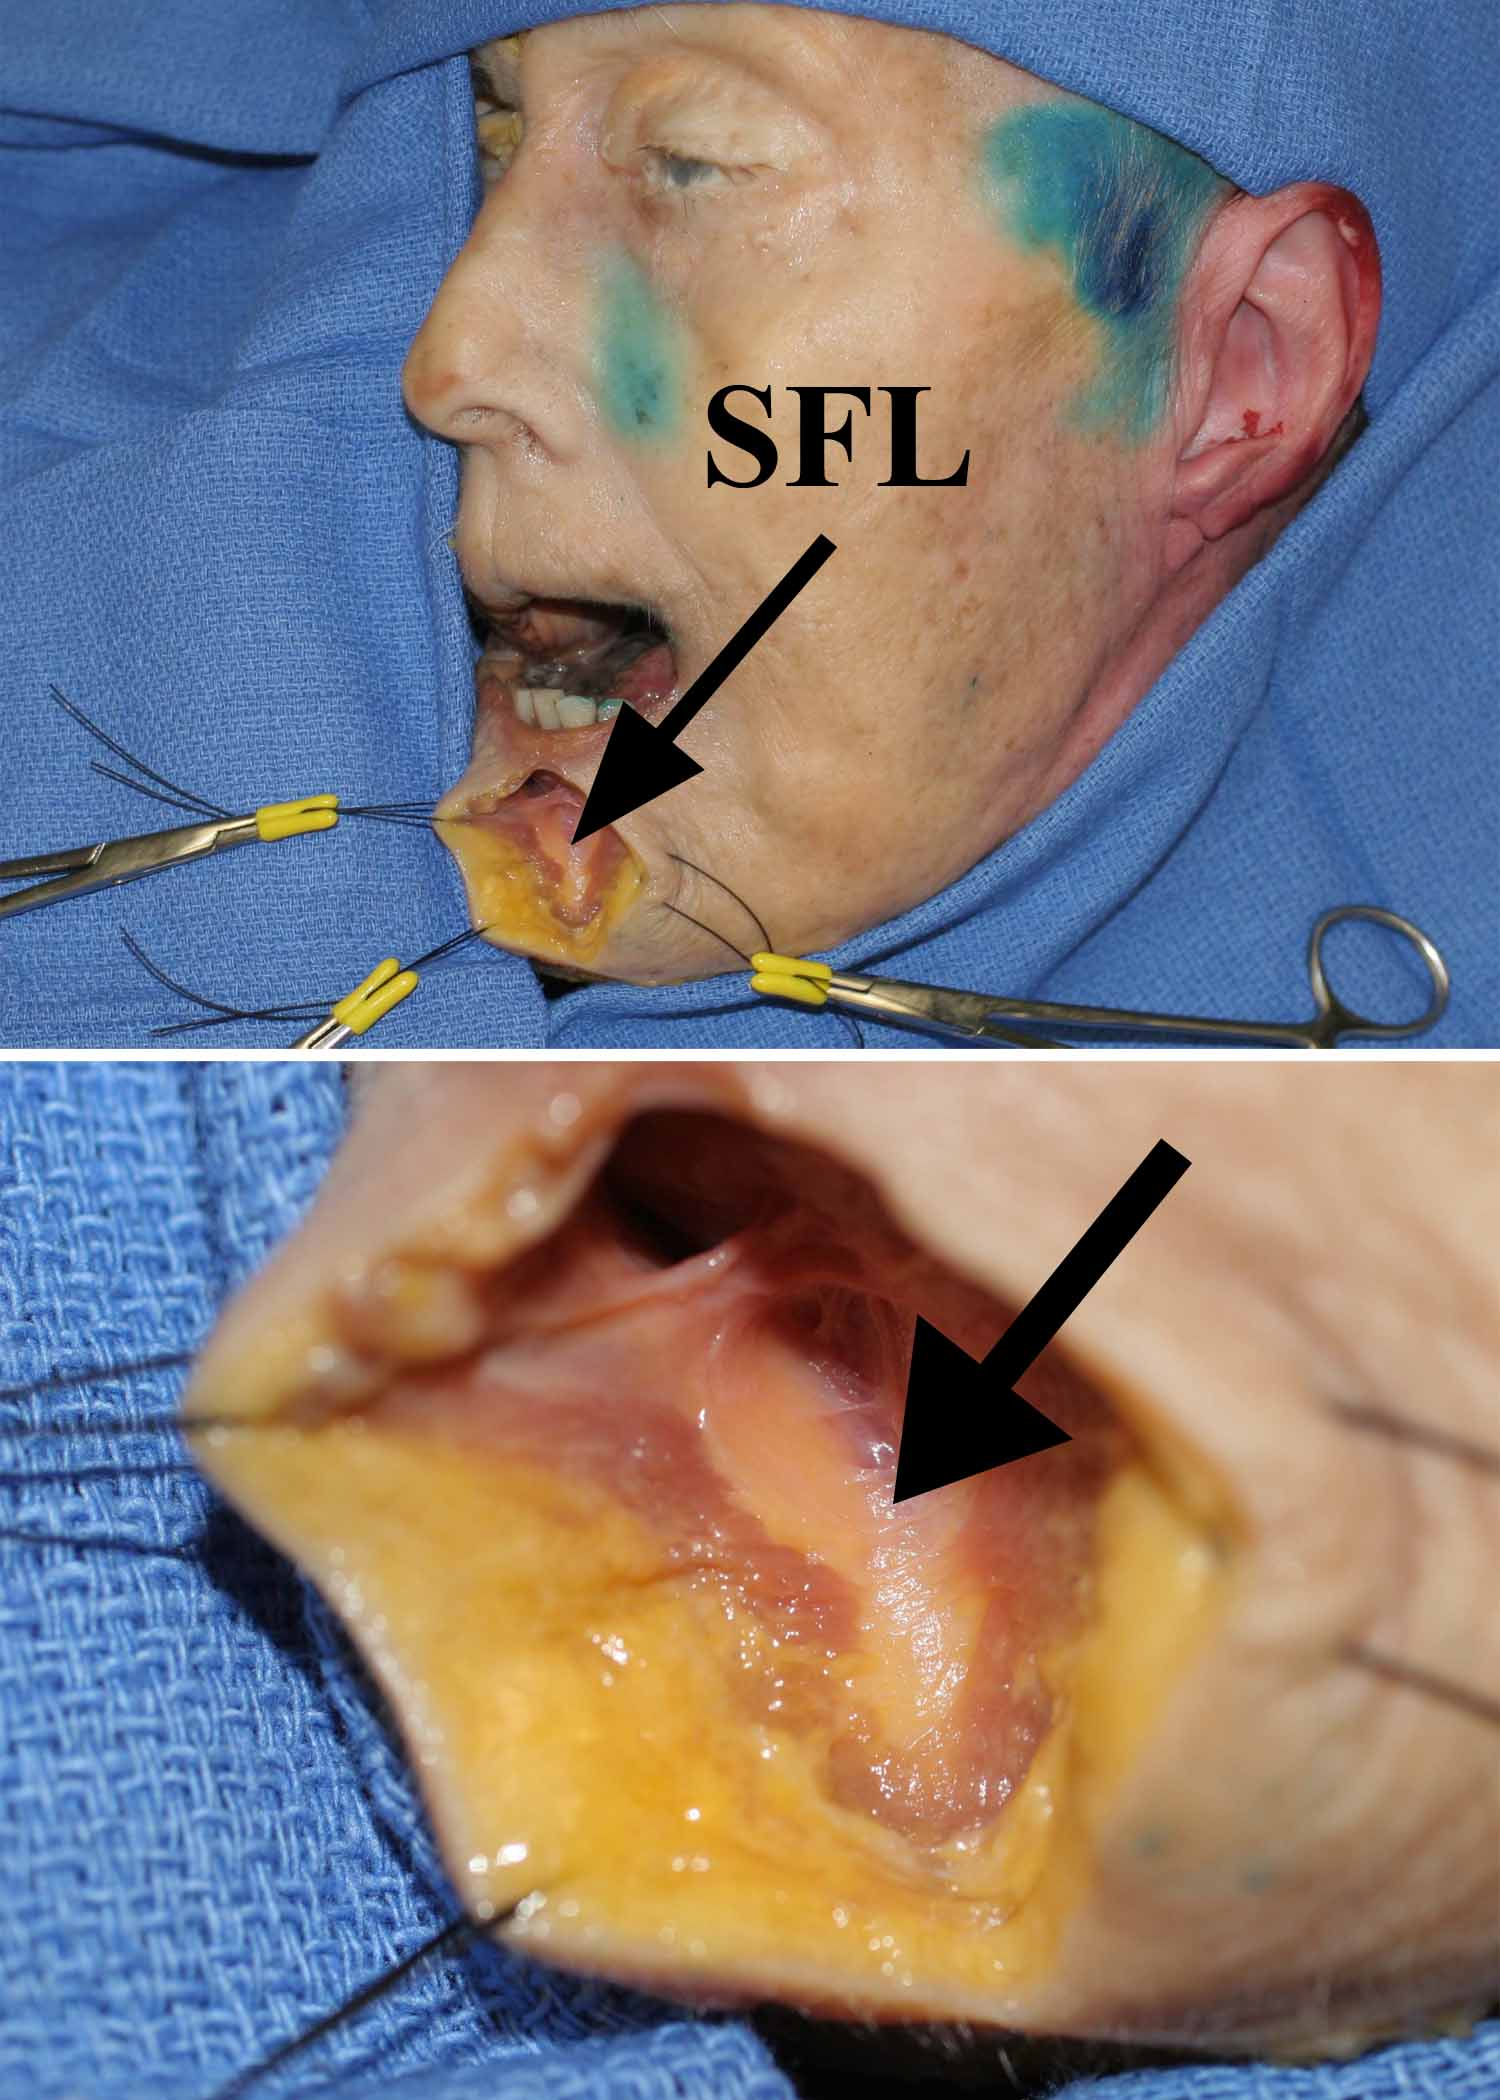 The Sub Orbicularis Oris Fat Of The Upper And Lower Lips